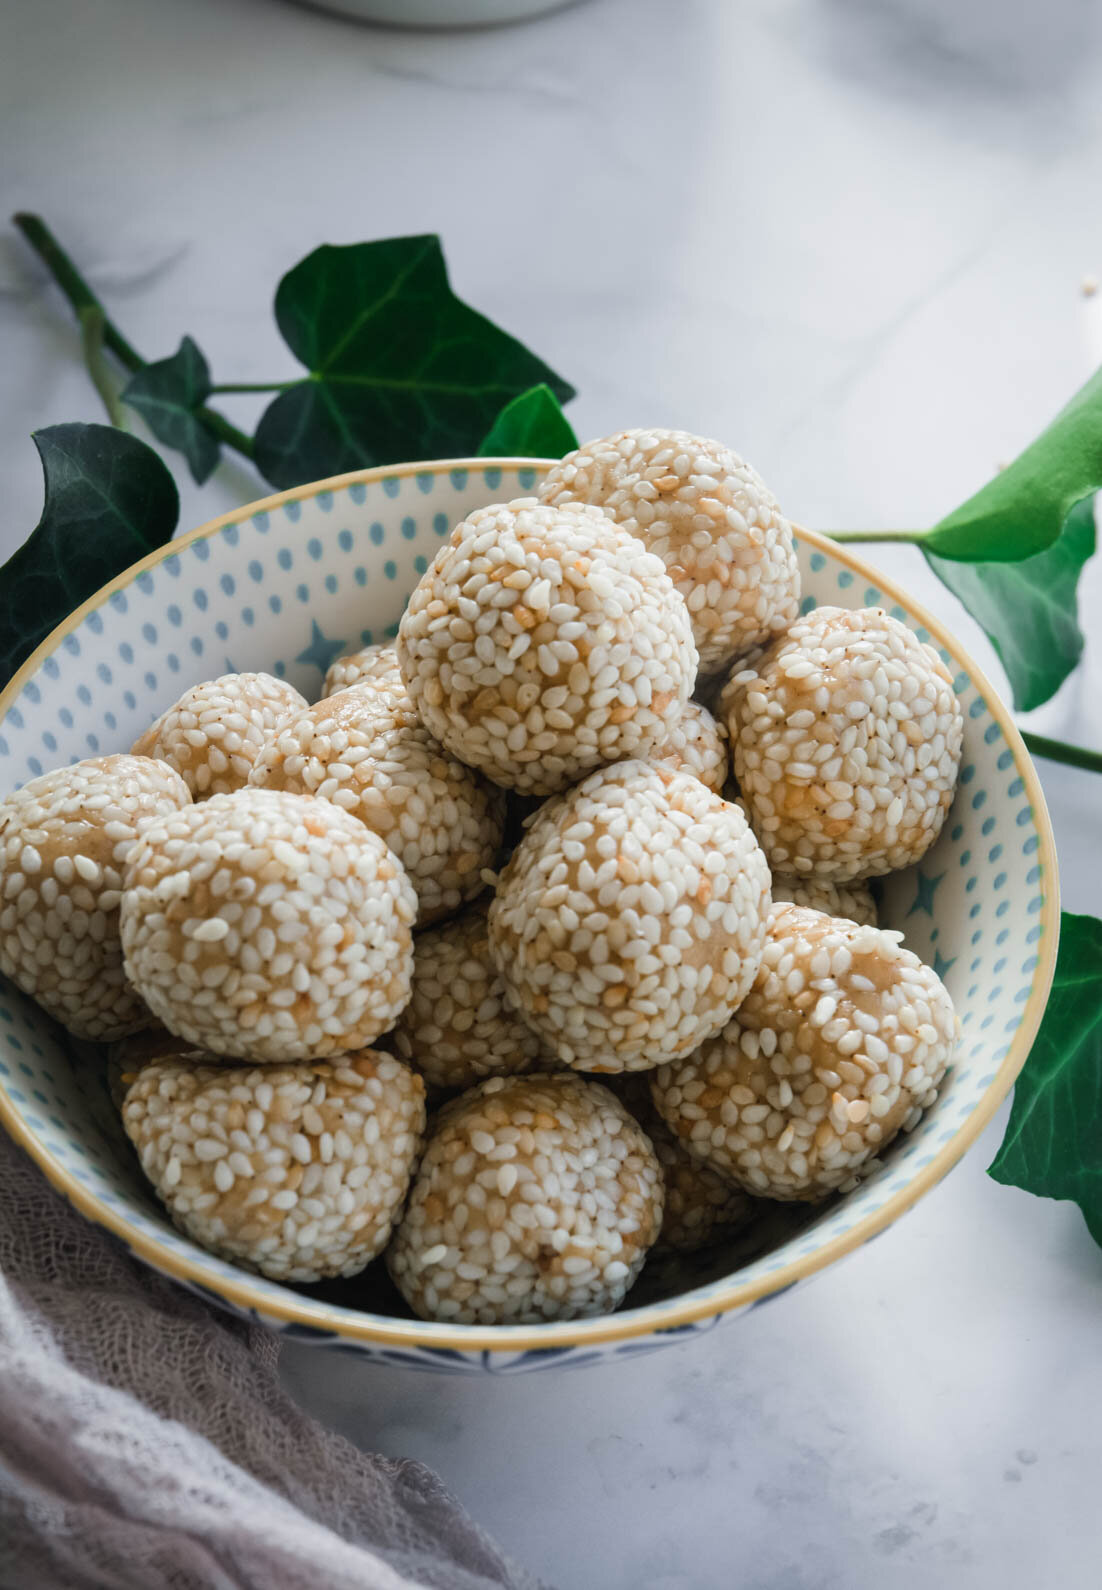 Peanut butter sesame balls are a quick dessert that requires just 5 ingredients and no baking. They're low in sugar and make the perfect treat anytime you're in the mood for something sweet. Paleo option available too! #vegandessert #peanutbuttersesameballs #calmeats #paleodessert #glutenfreedessert #nobakedessert #dairyfree #nobake